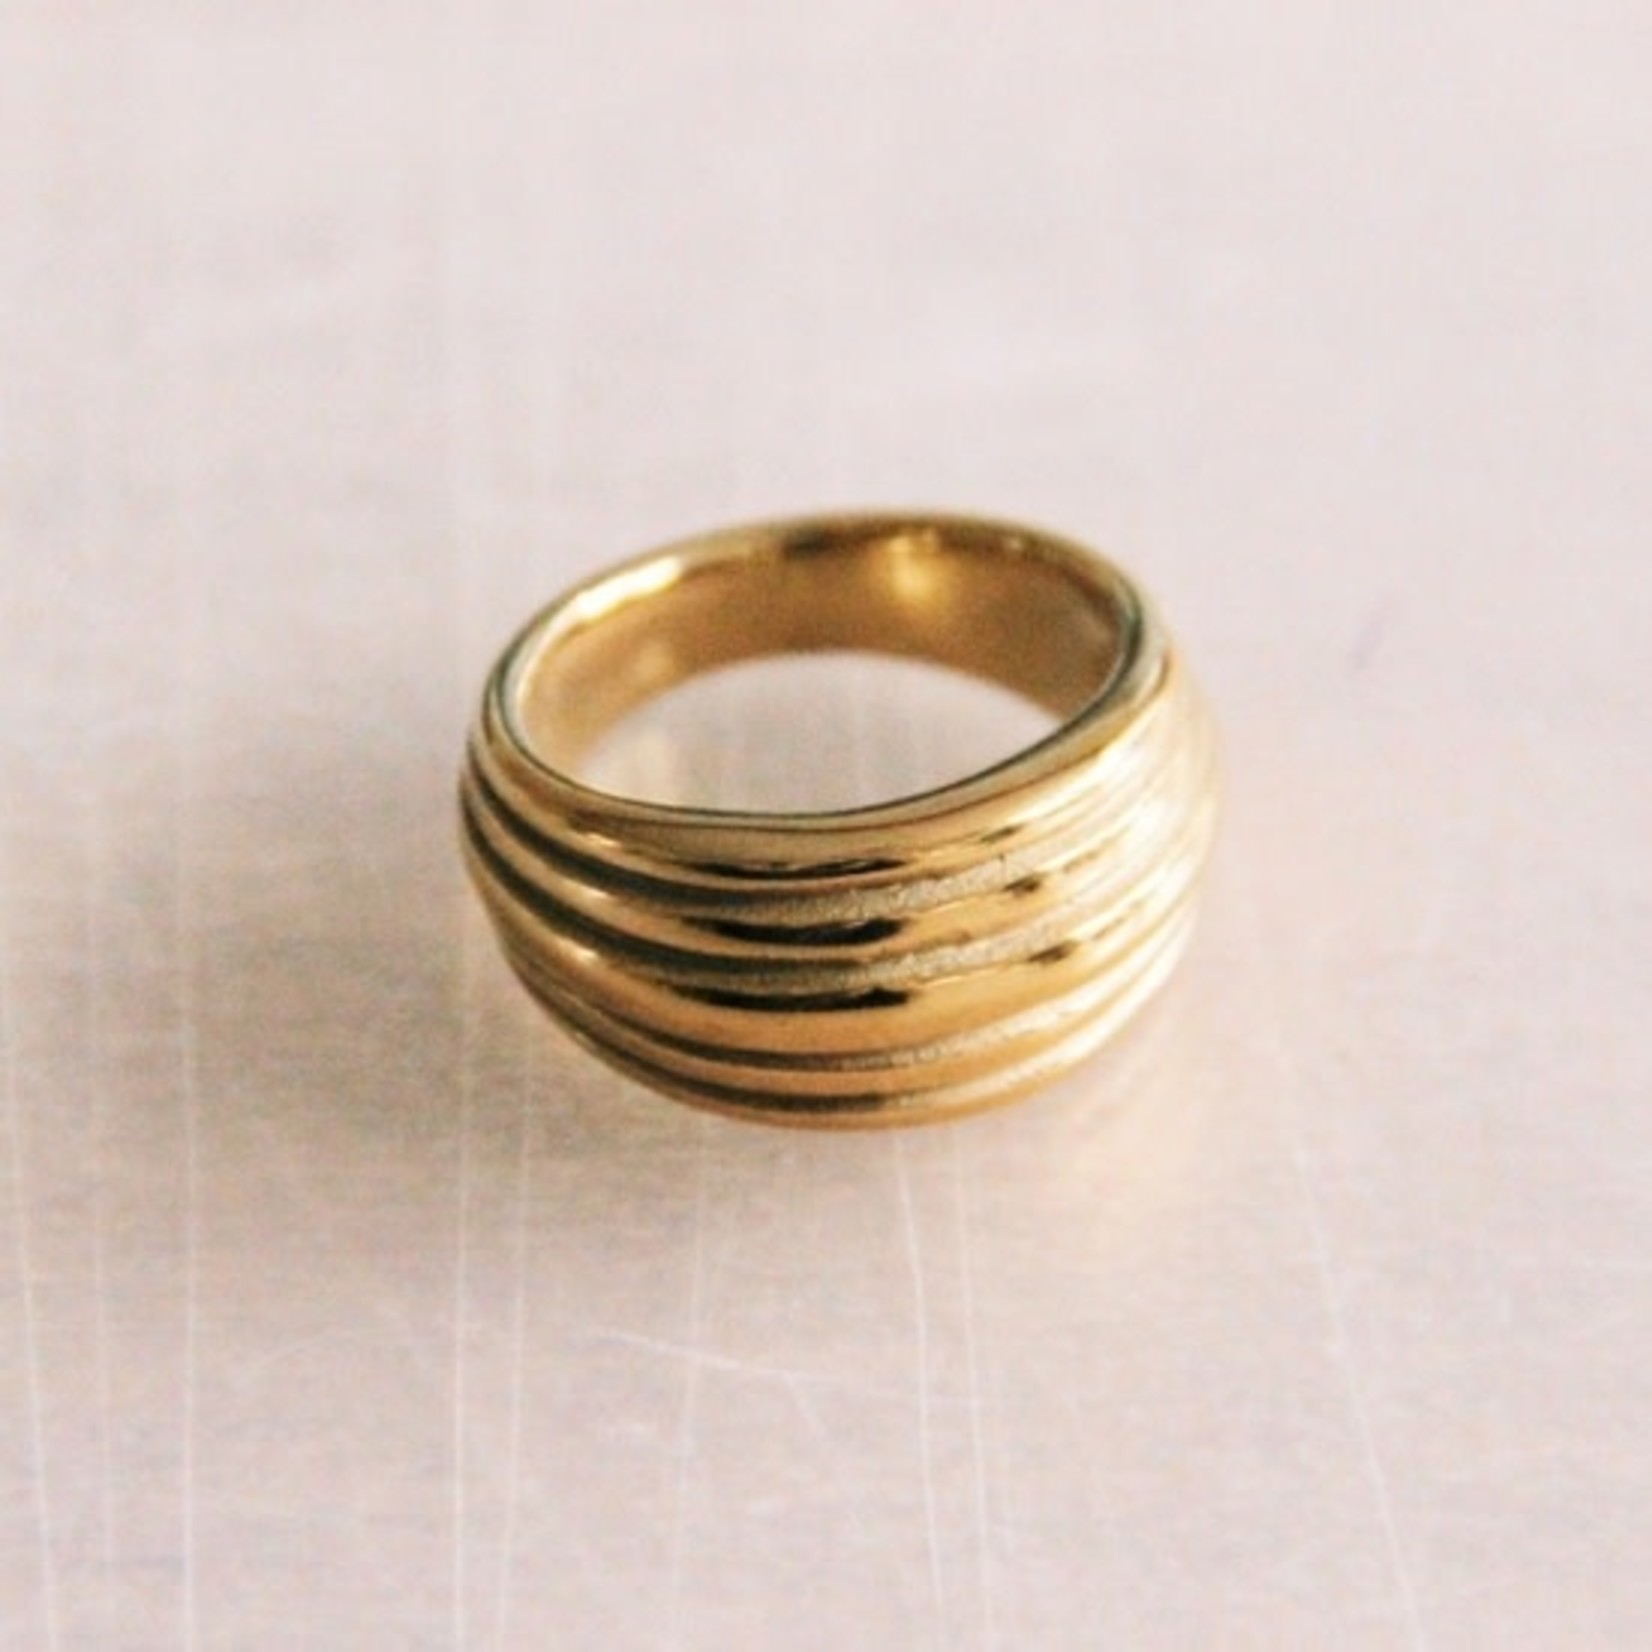 Stainless Steel Wide Flared Ring Machined - Gold